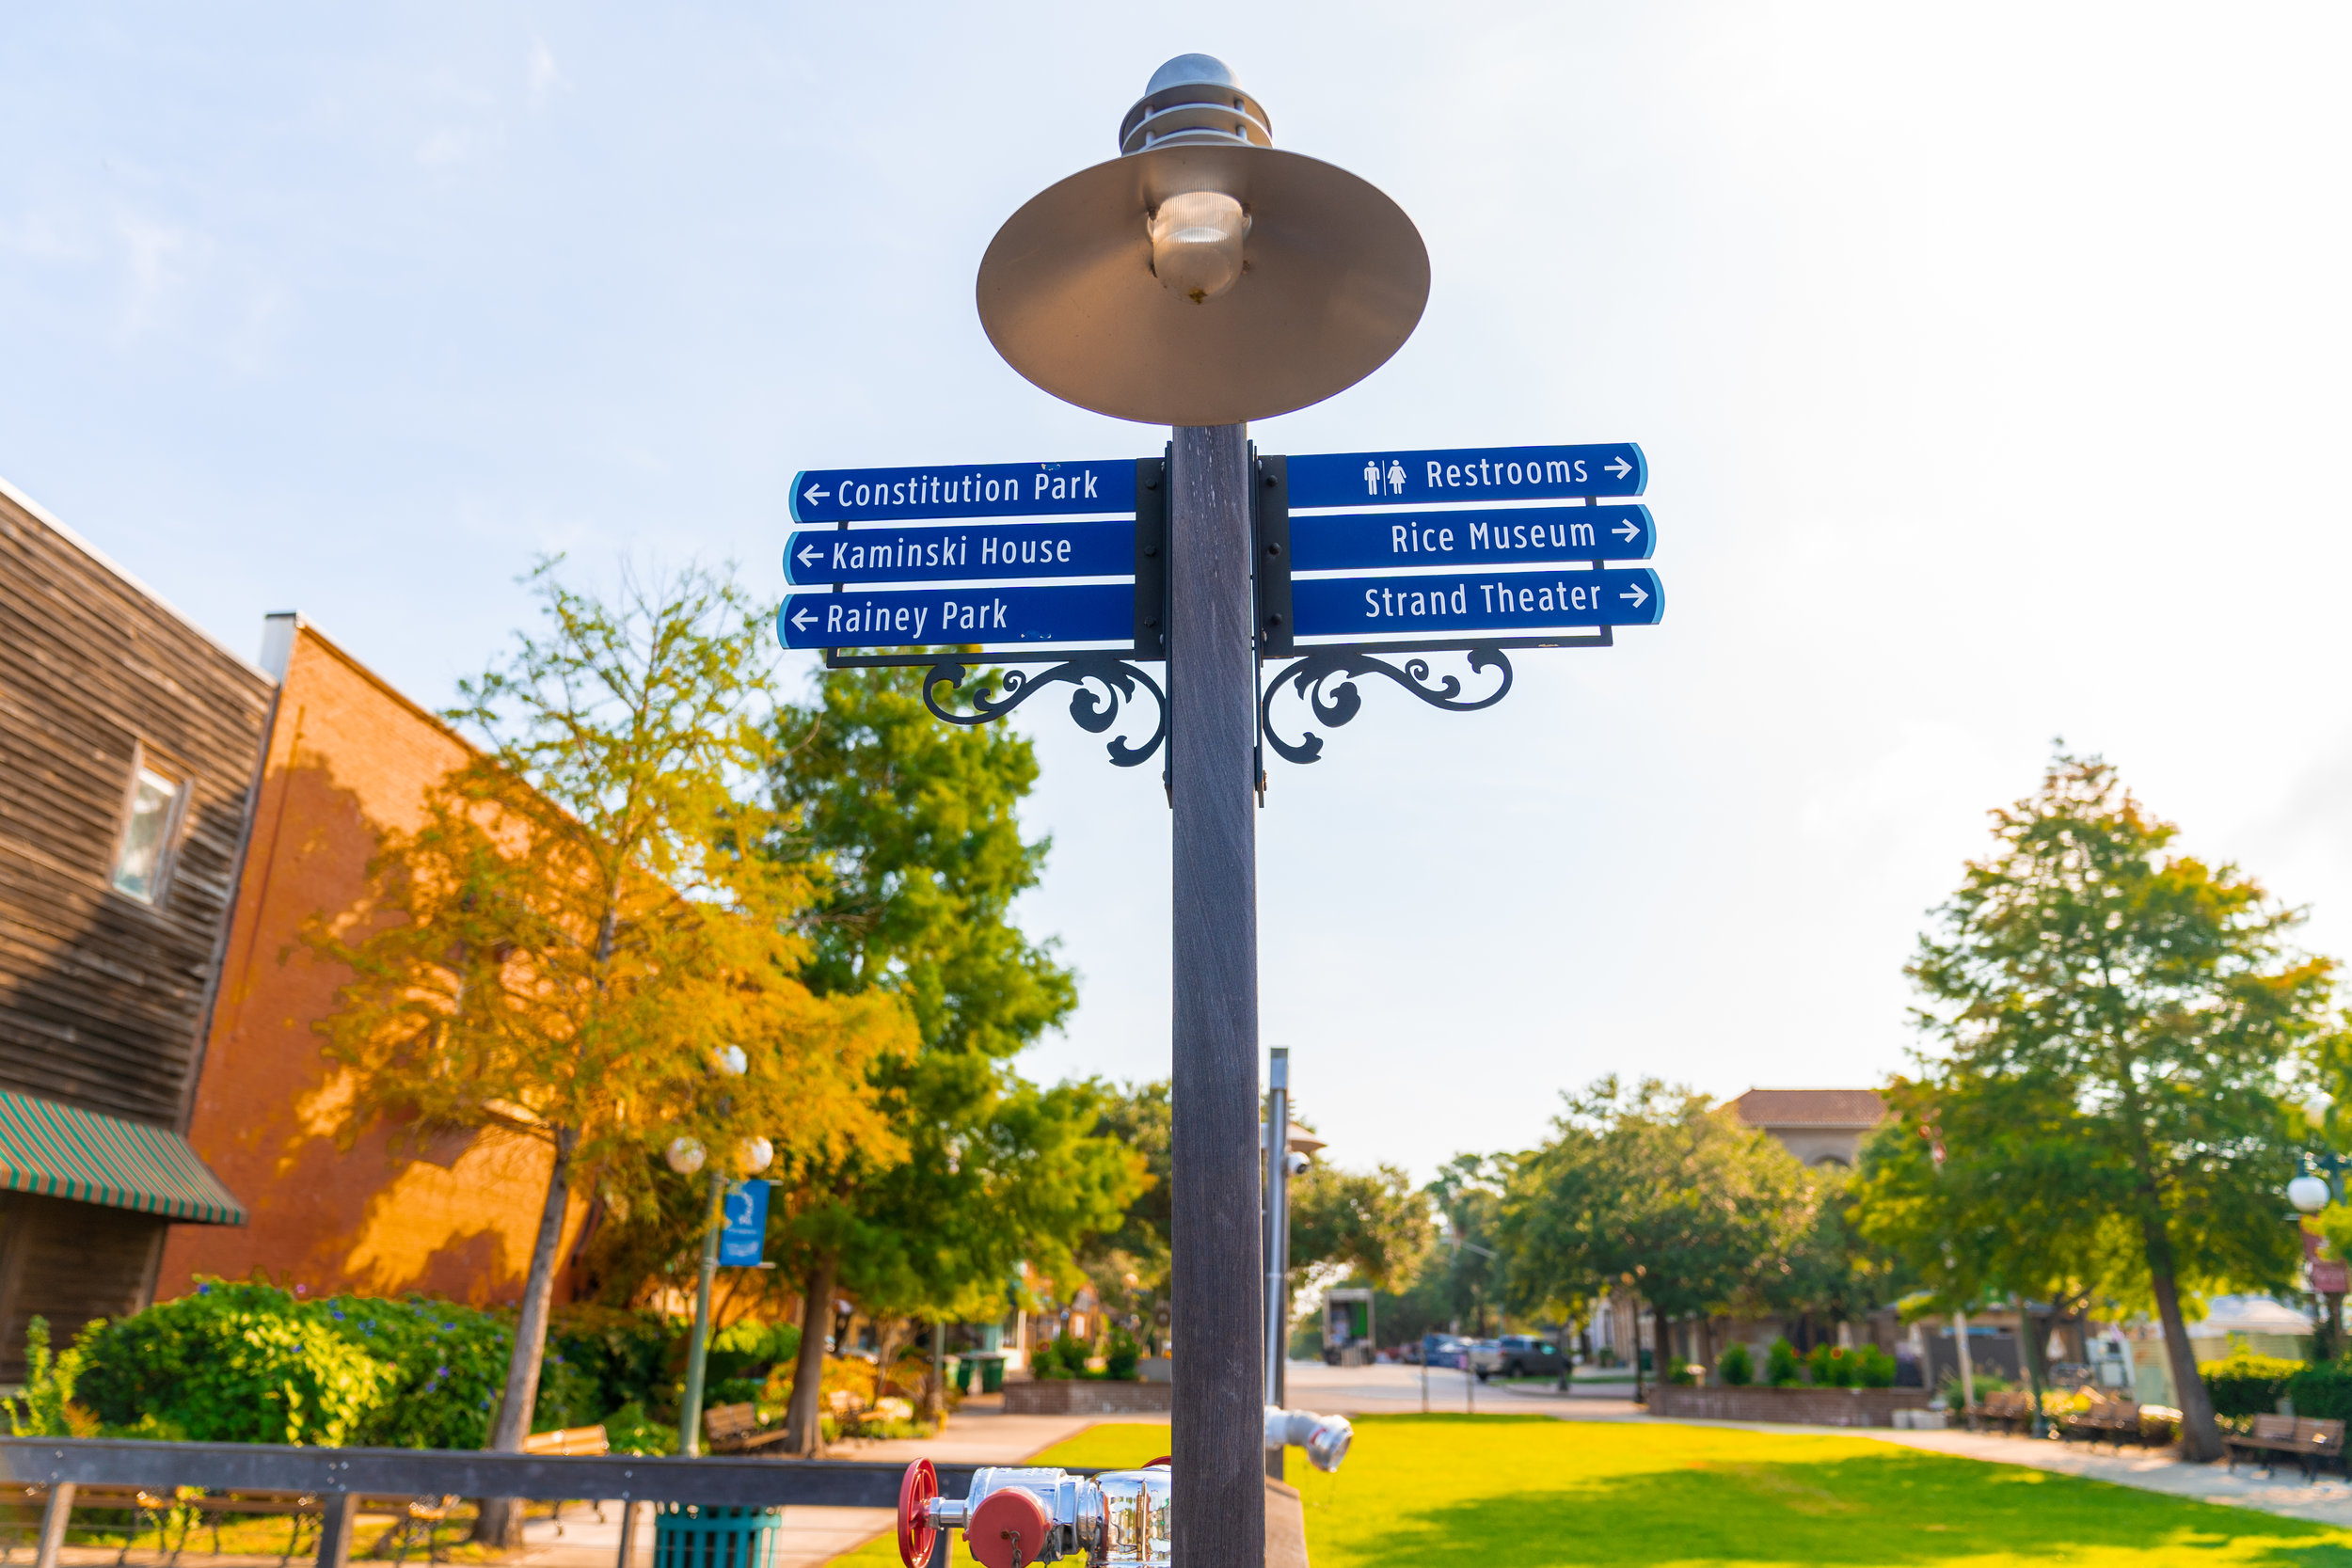 Georgetown_Wayfinding (19 of 34).jpg